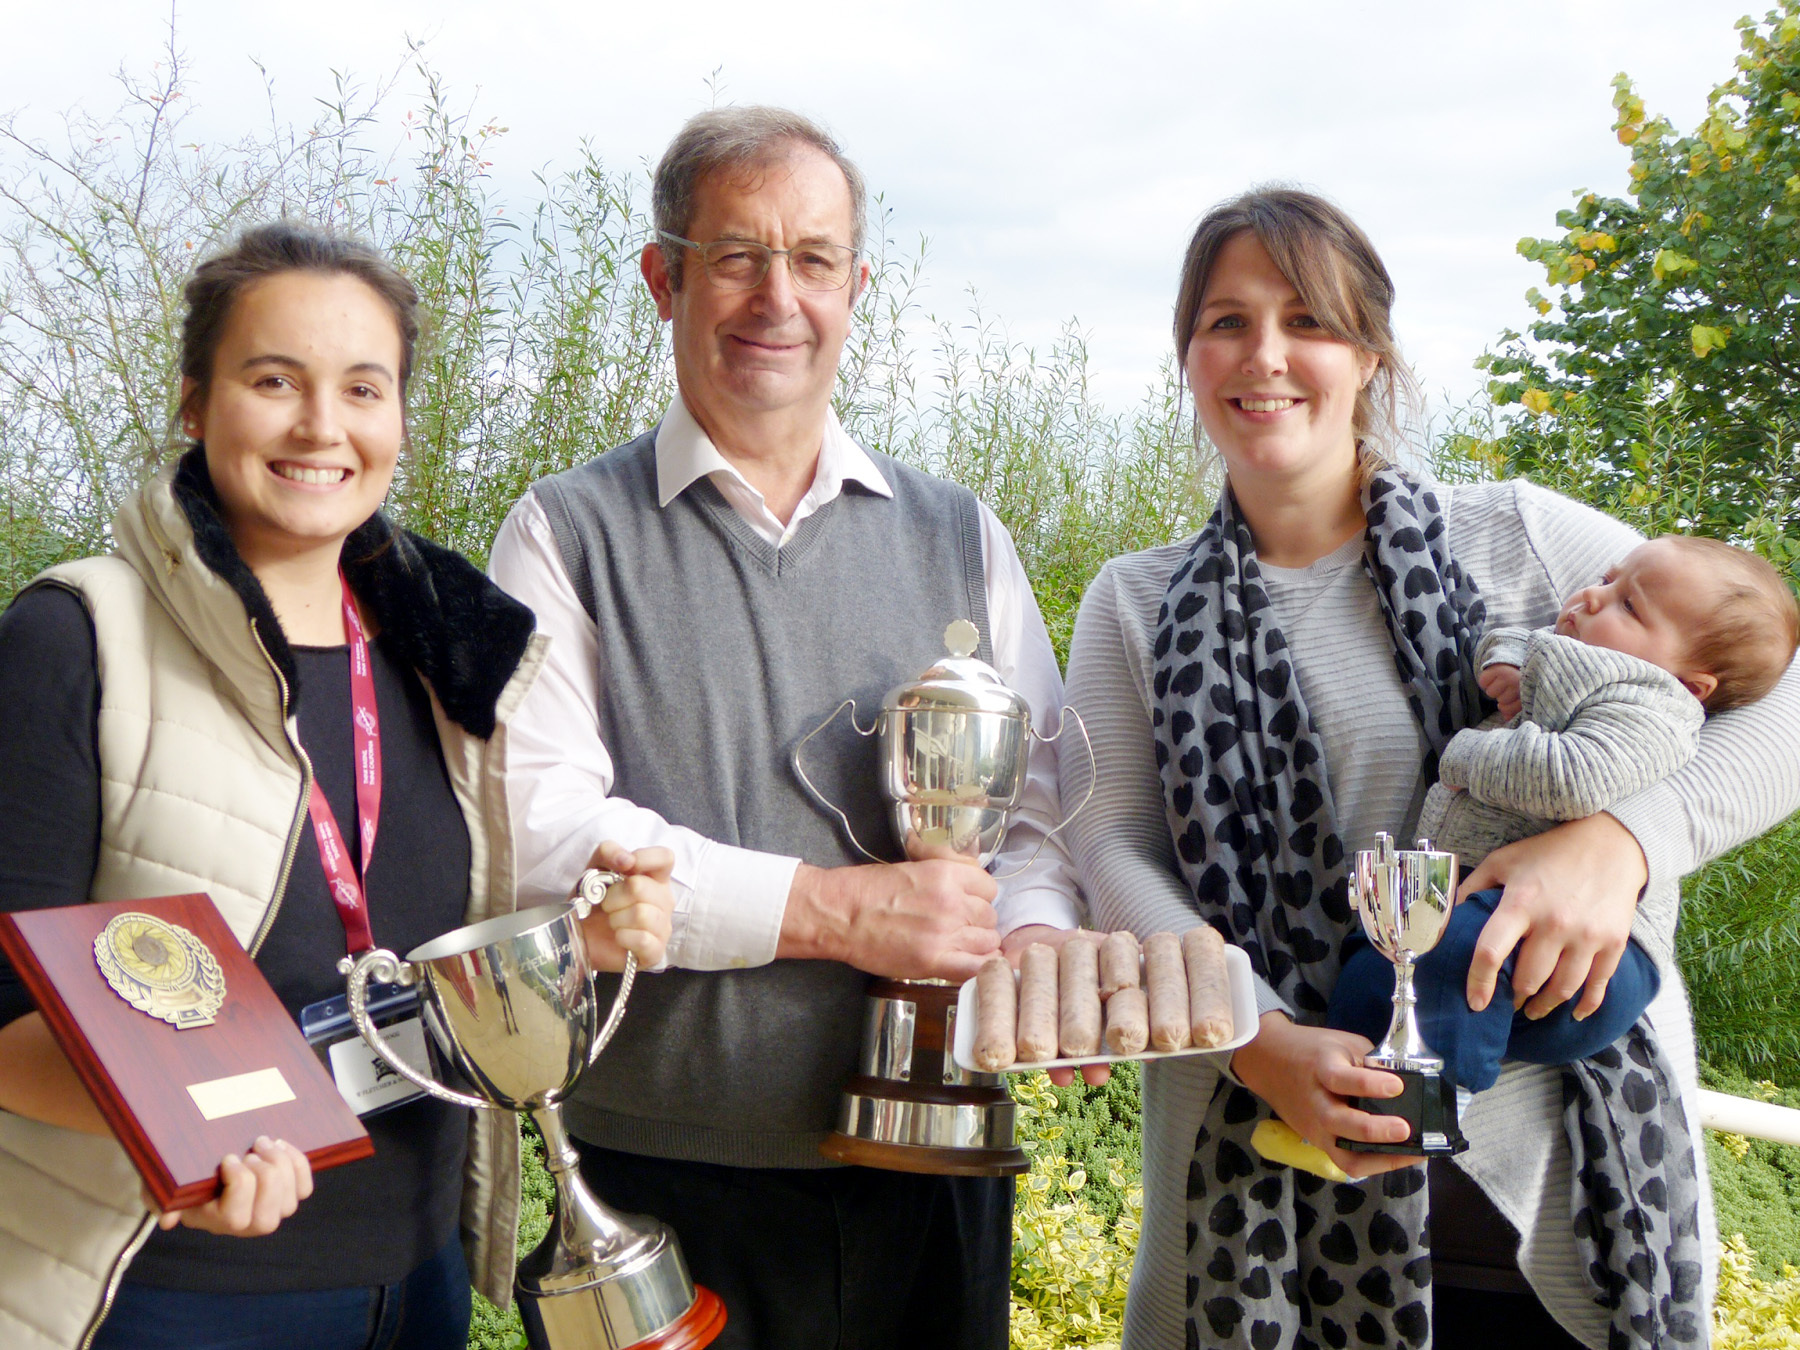 Pictured with their 2017 Great Yorkshire trophies are, from left, Megan Hogg, Peter Hogg, Sarah Scarth and baby Albie, from W Fletcher & Sons Butchers in Norton.